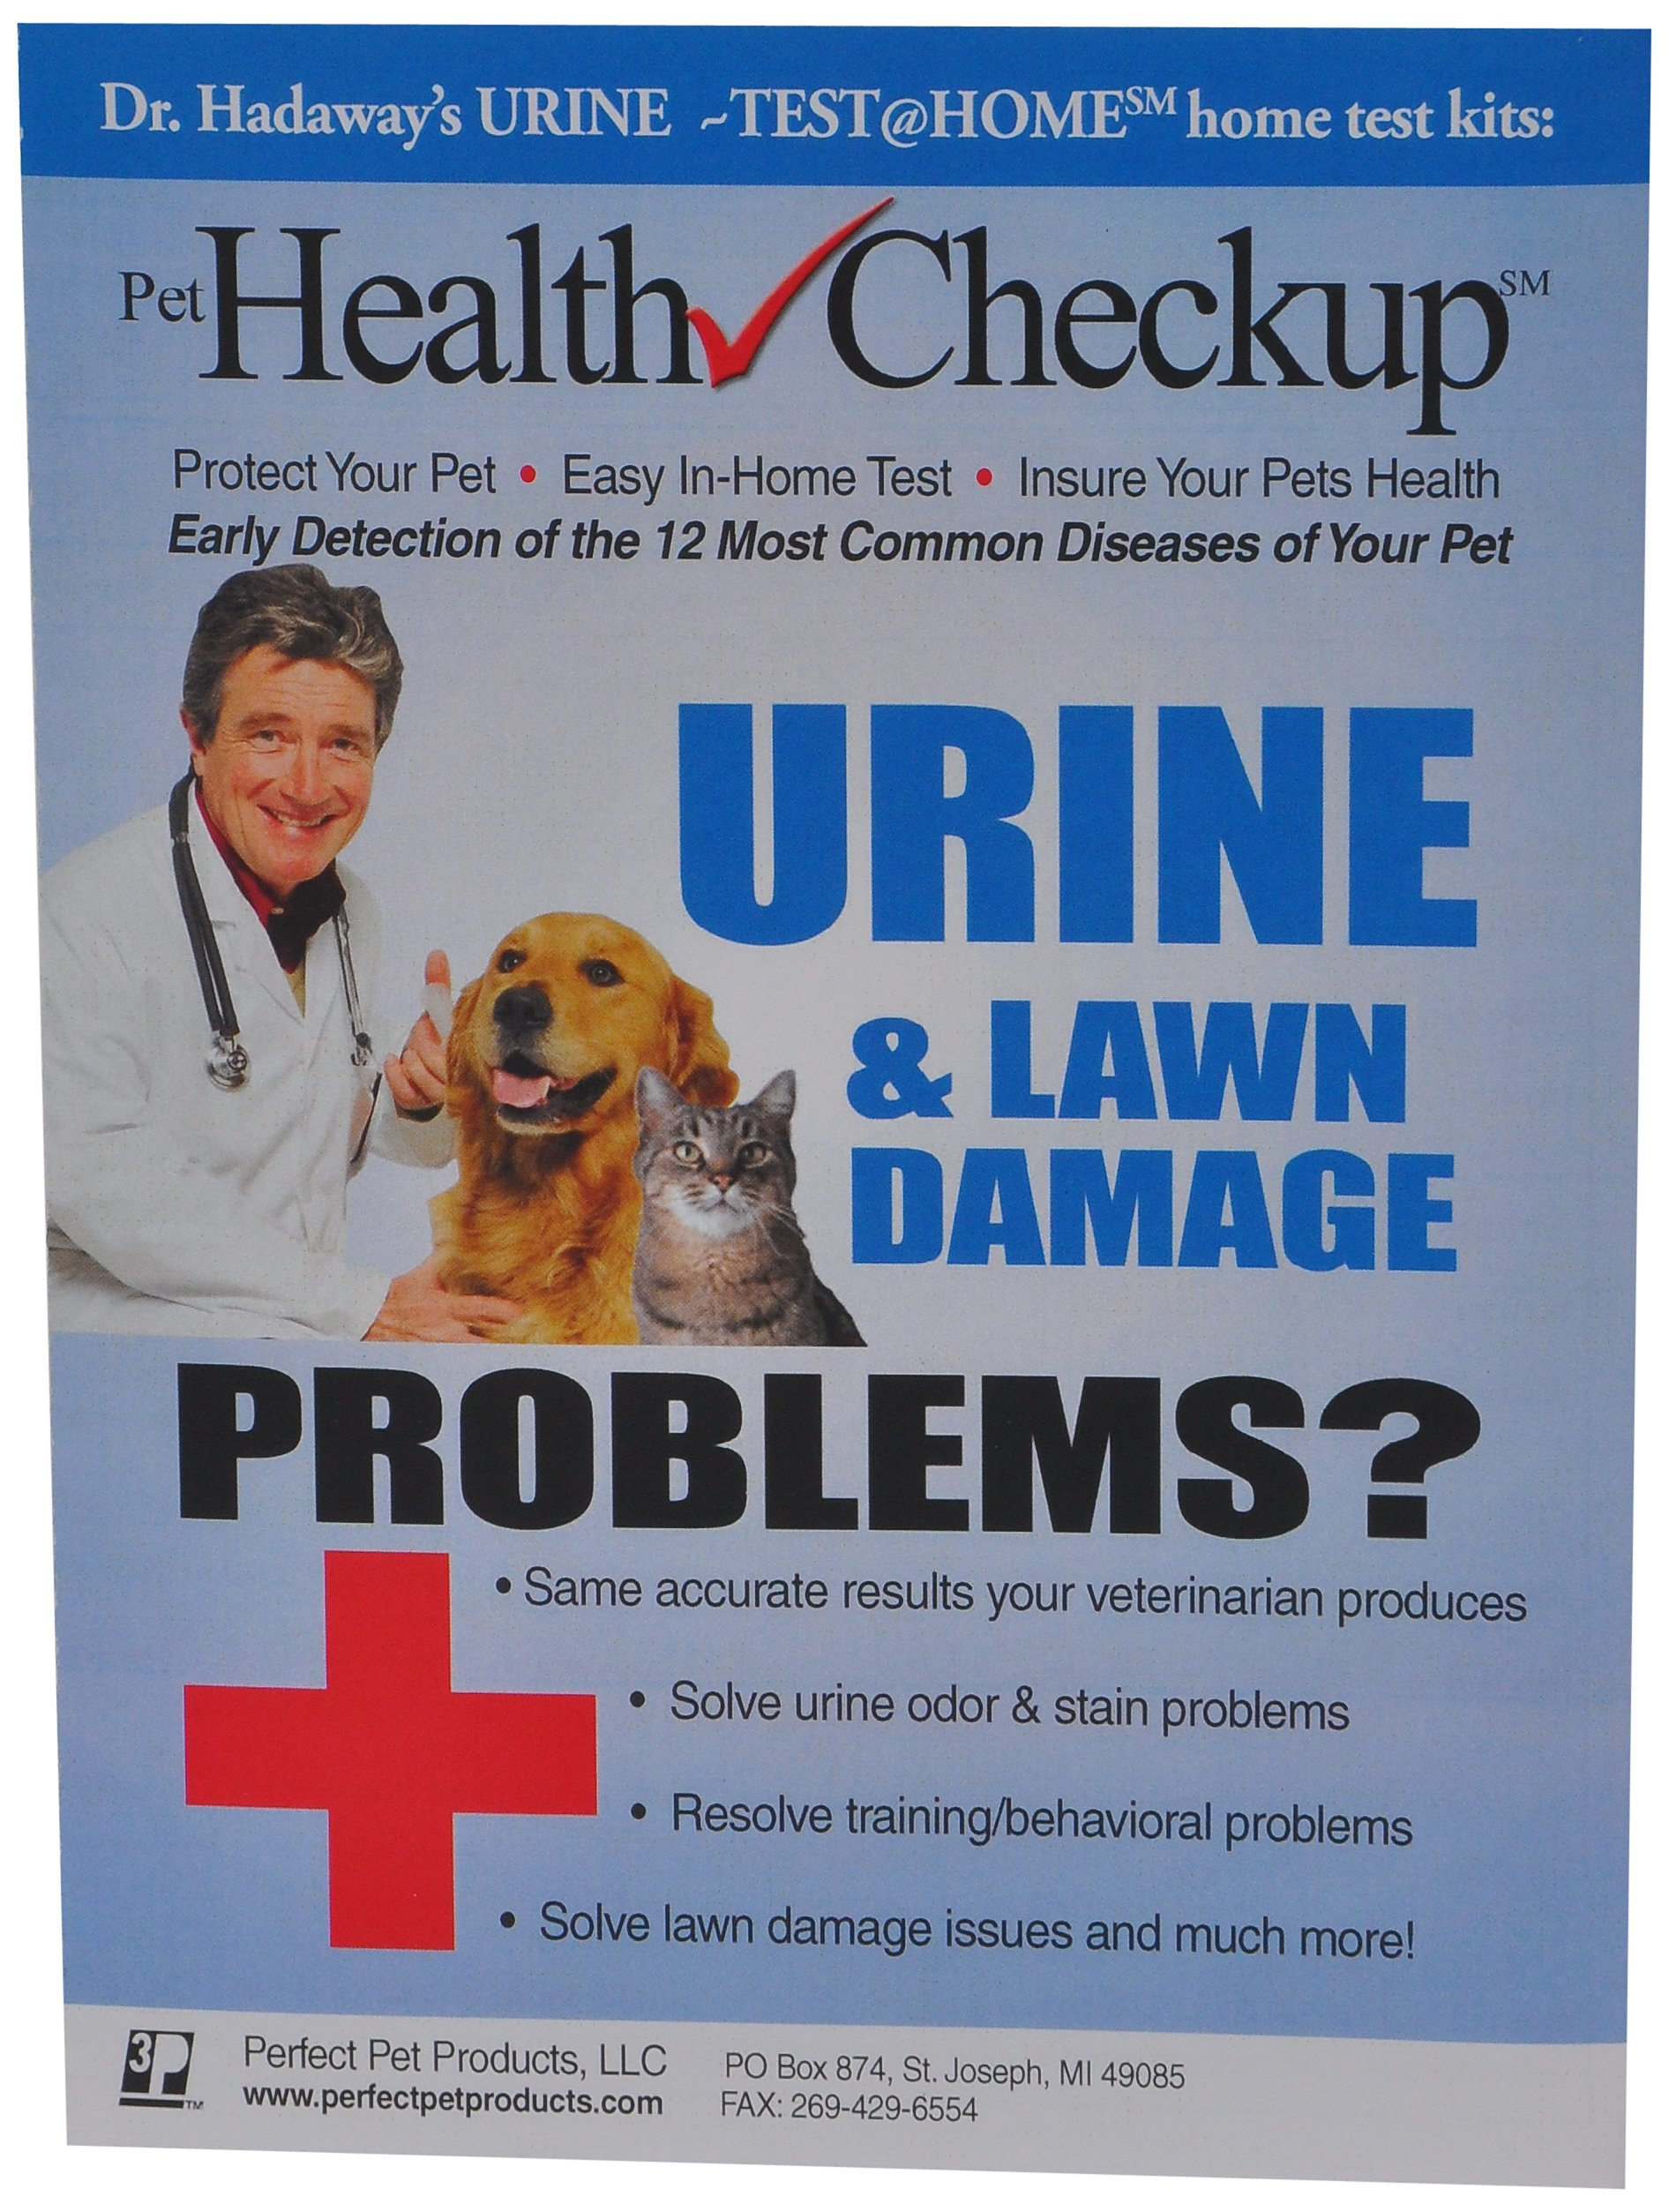 Pet Health Checkup AT HOME TEST Kit for urine infections, diabetes, pet disease, urinating in home or other training problems by Unknown (Image #1)